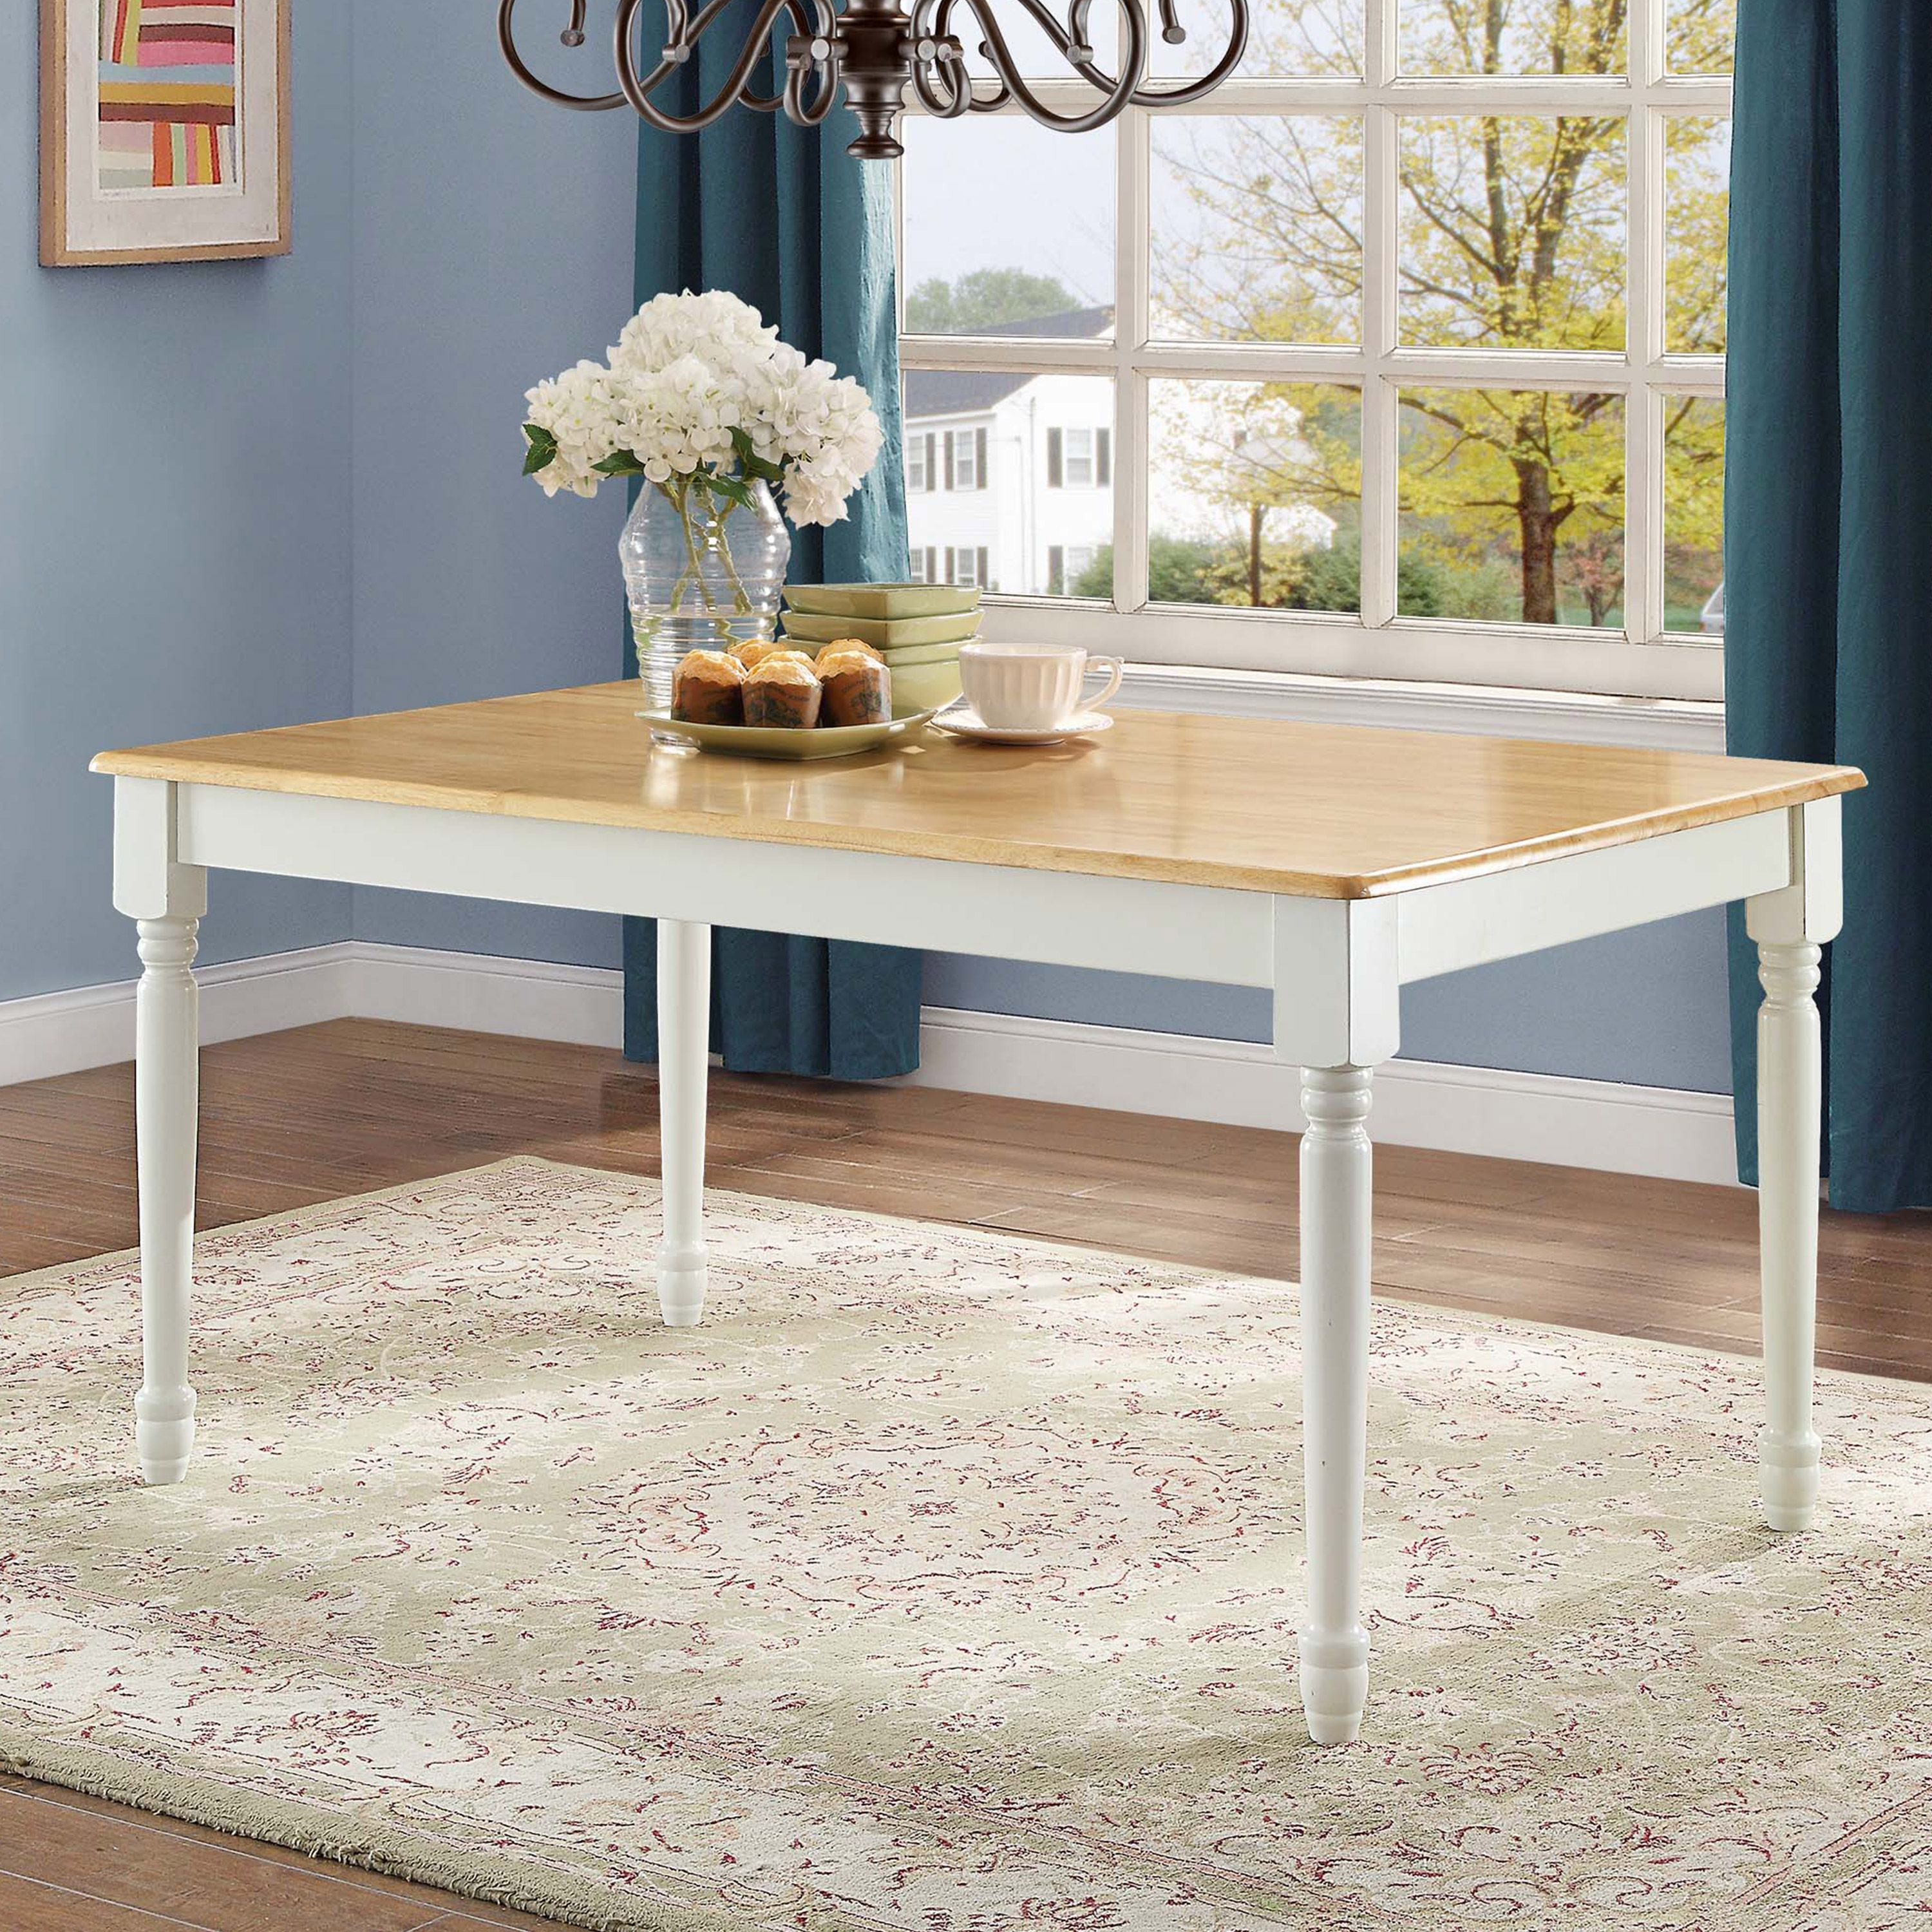 Home Dining table in kitchen, Farmhouse dining table